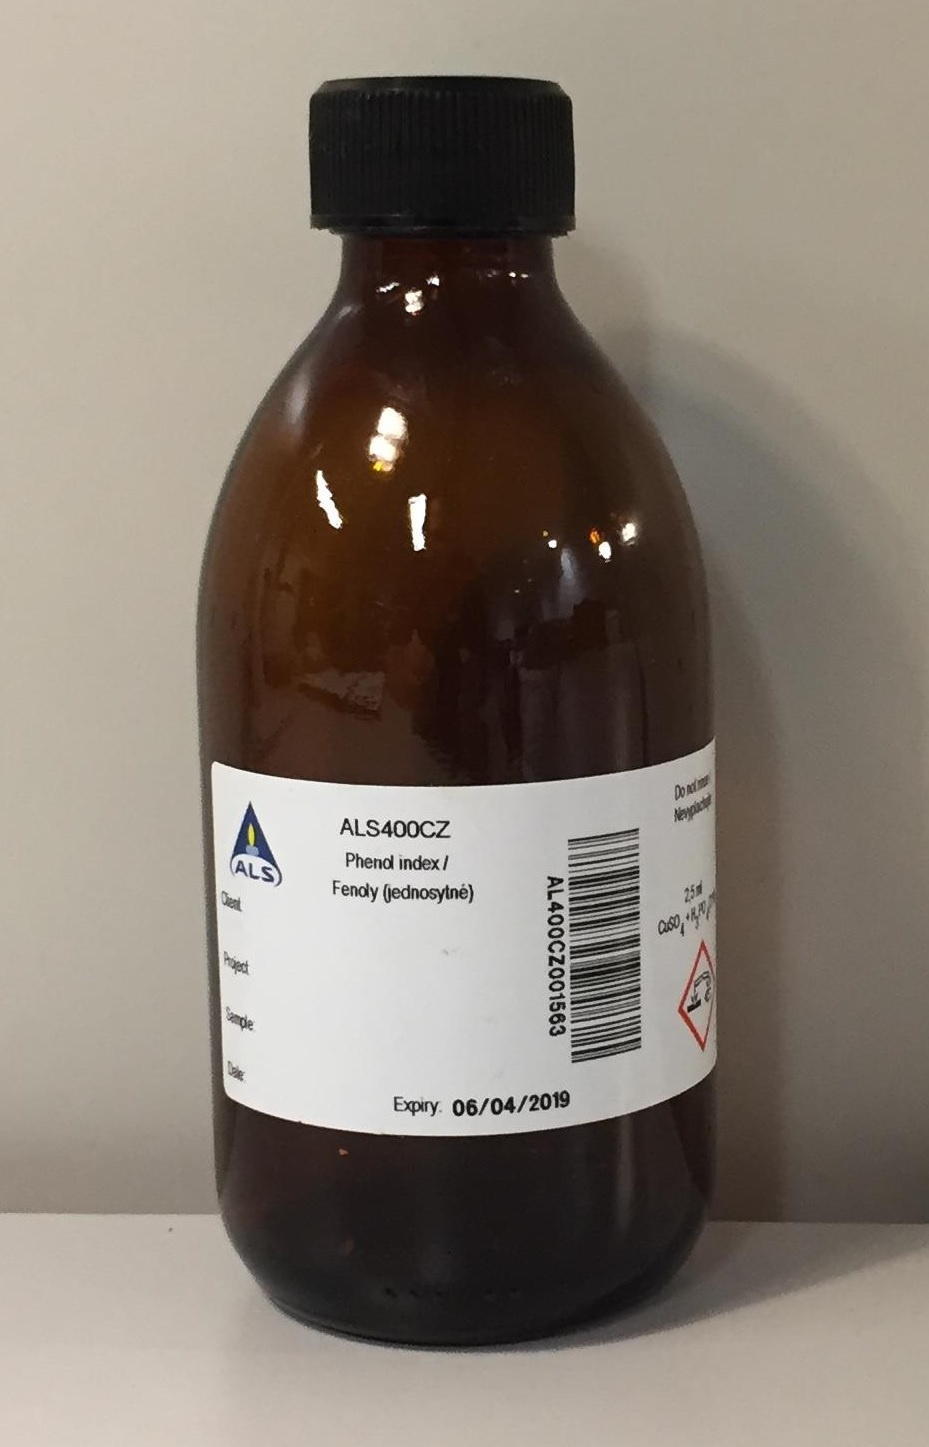 Conserved bottle for phenol and phenol index